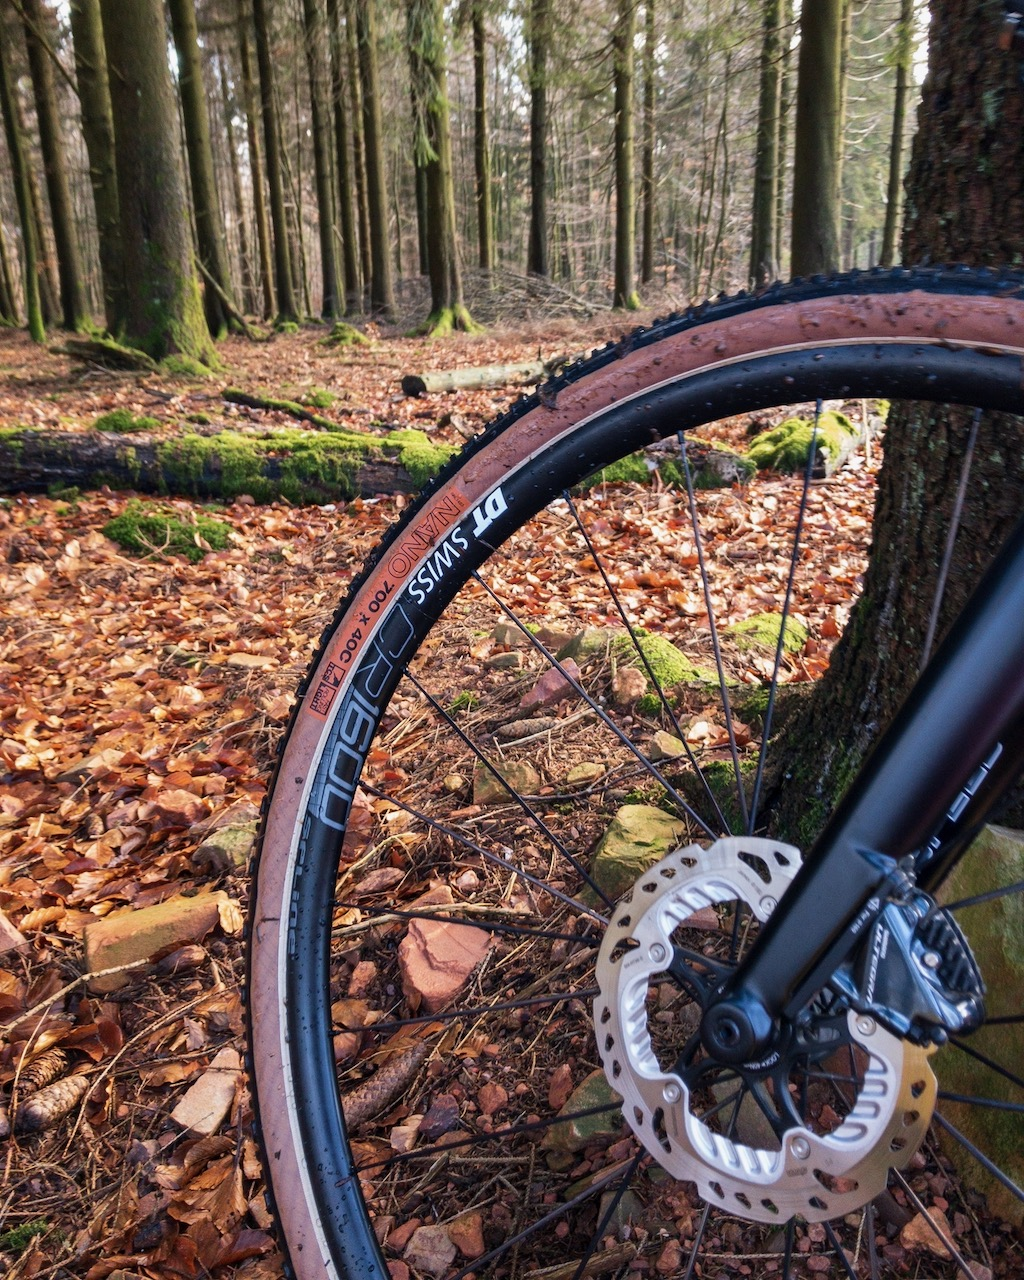 Wtb NANO 40 on DT Swiss CR1600 Spline db 23 wheels in the forest